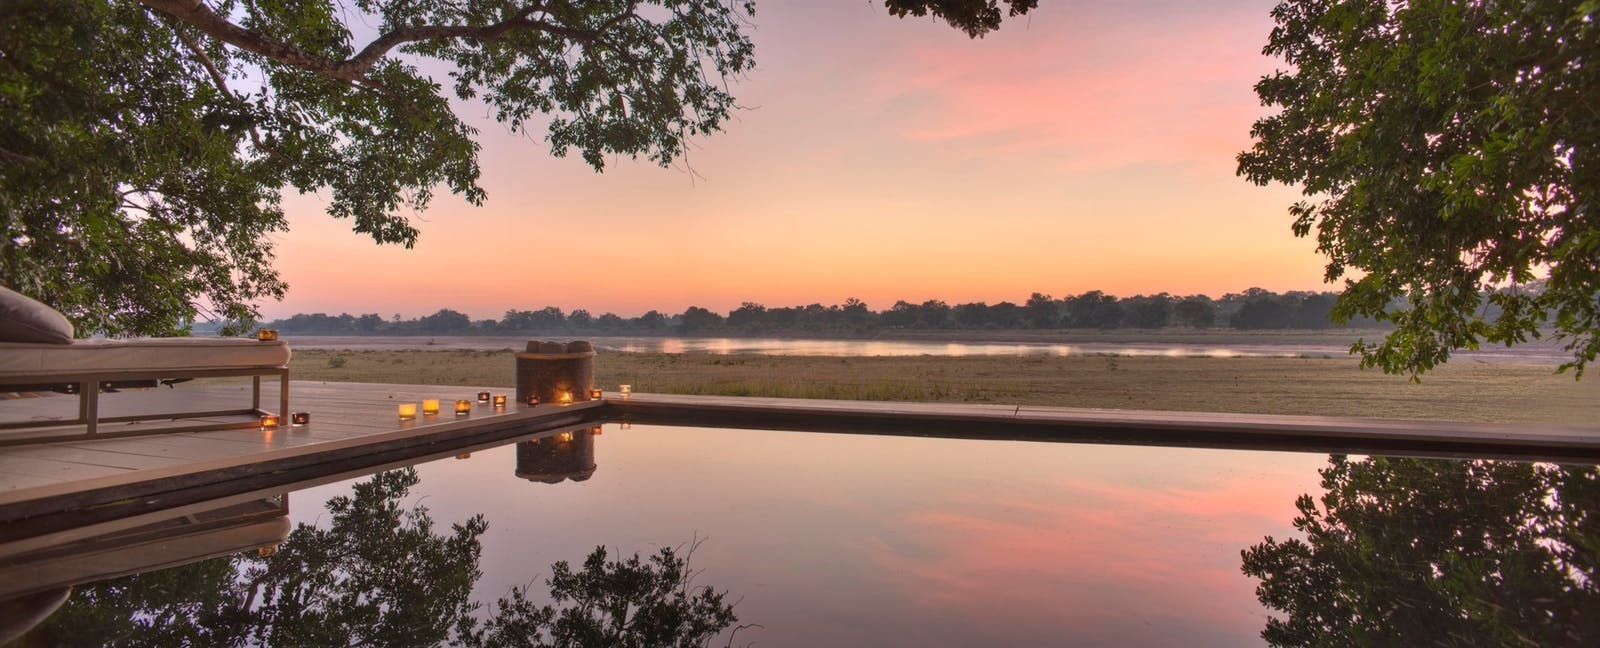 Sunset View at Time + Tide Chinzombo, South Luangwa Safari, Zambia, Africa